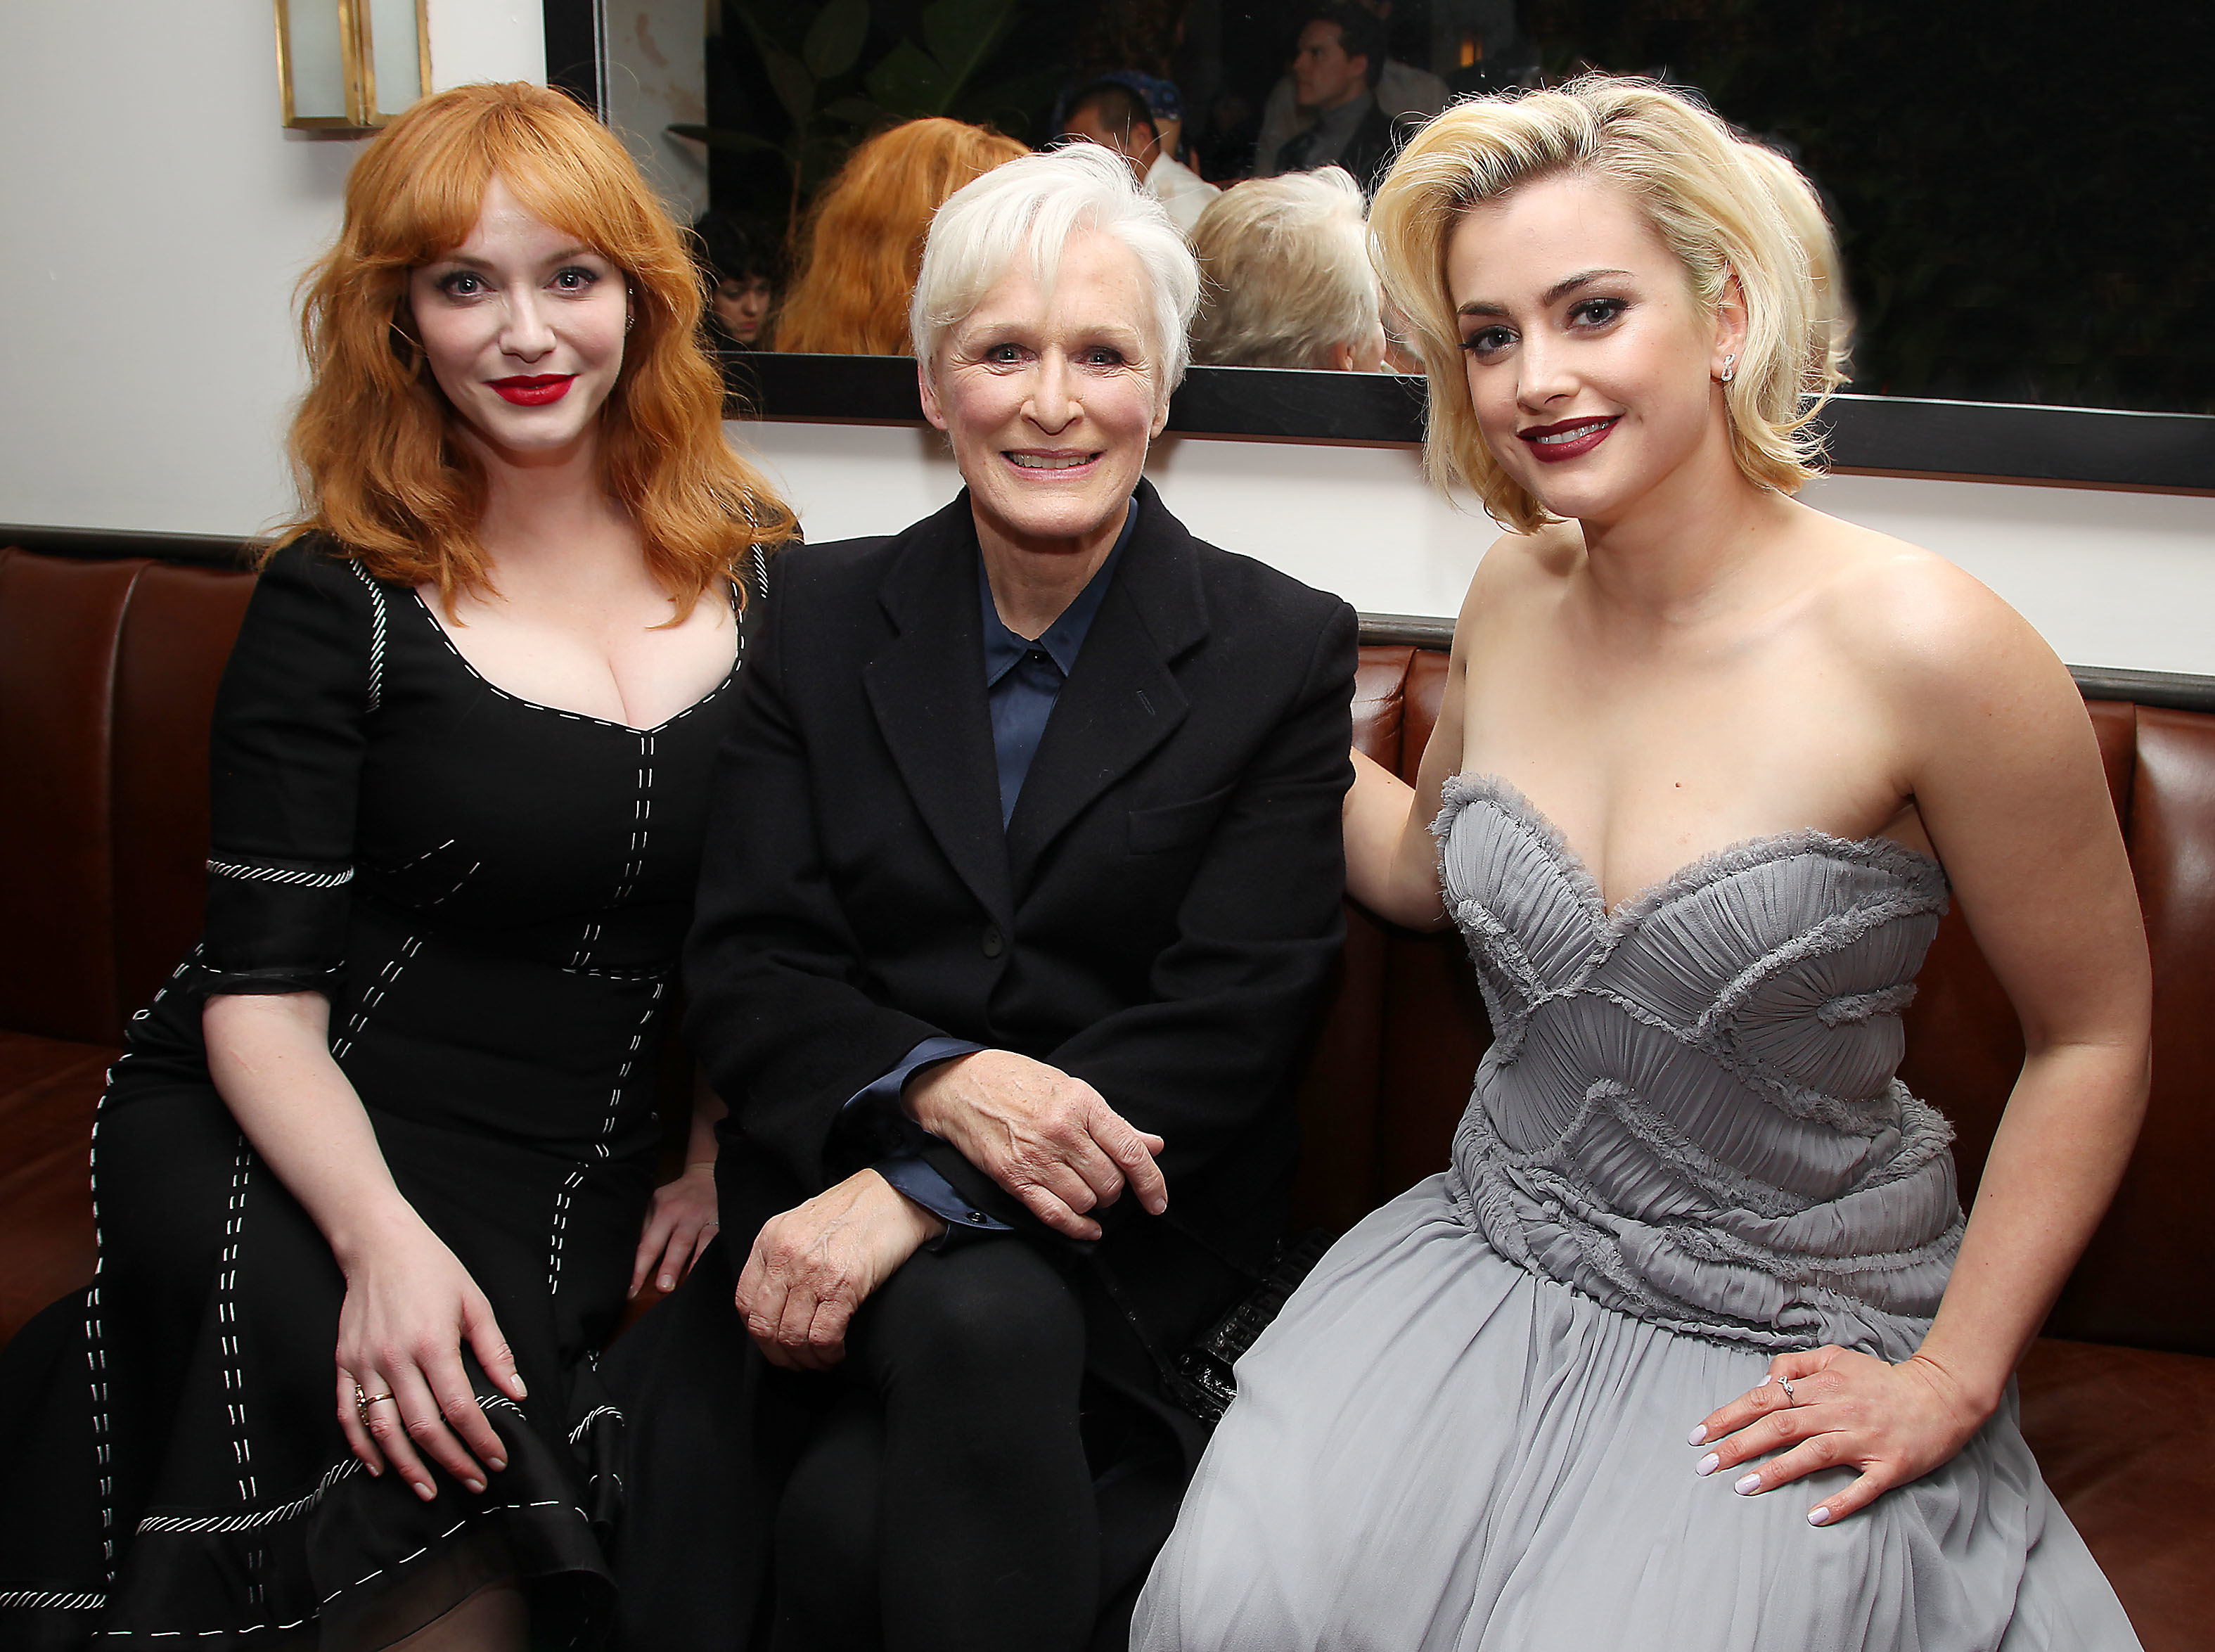 """Christina Hendricks, Glenn Close and Stefanie Martini attend the premiere of """"Crooked House"""" in New York City on Dec. 13, 2017."""